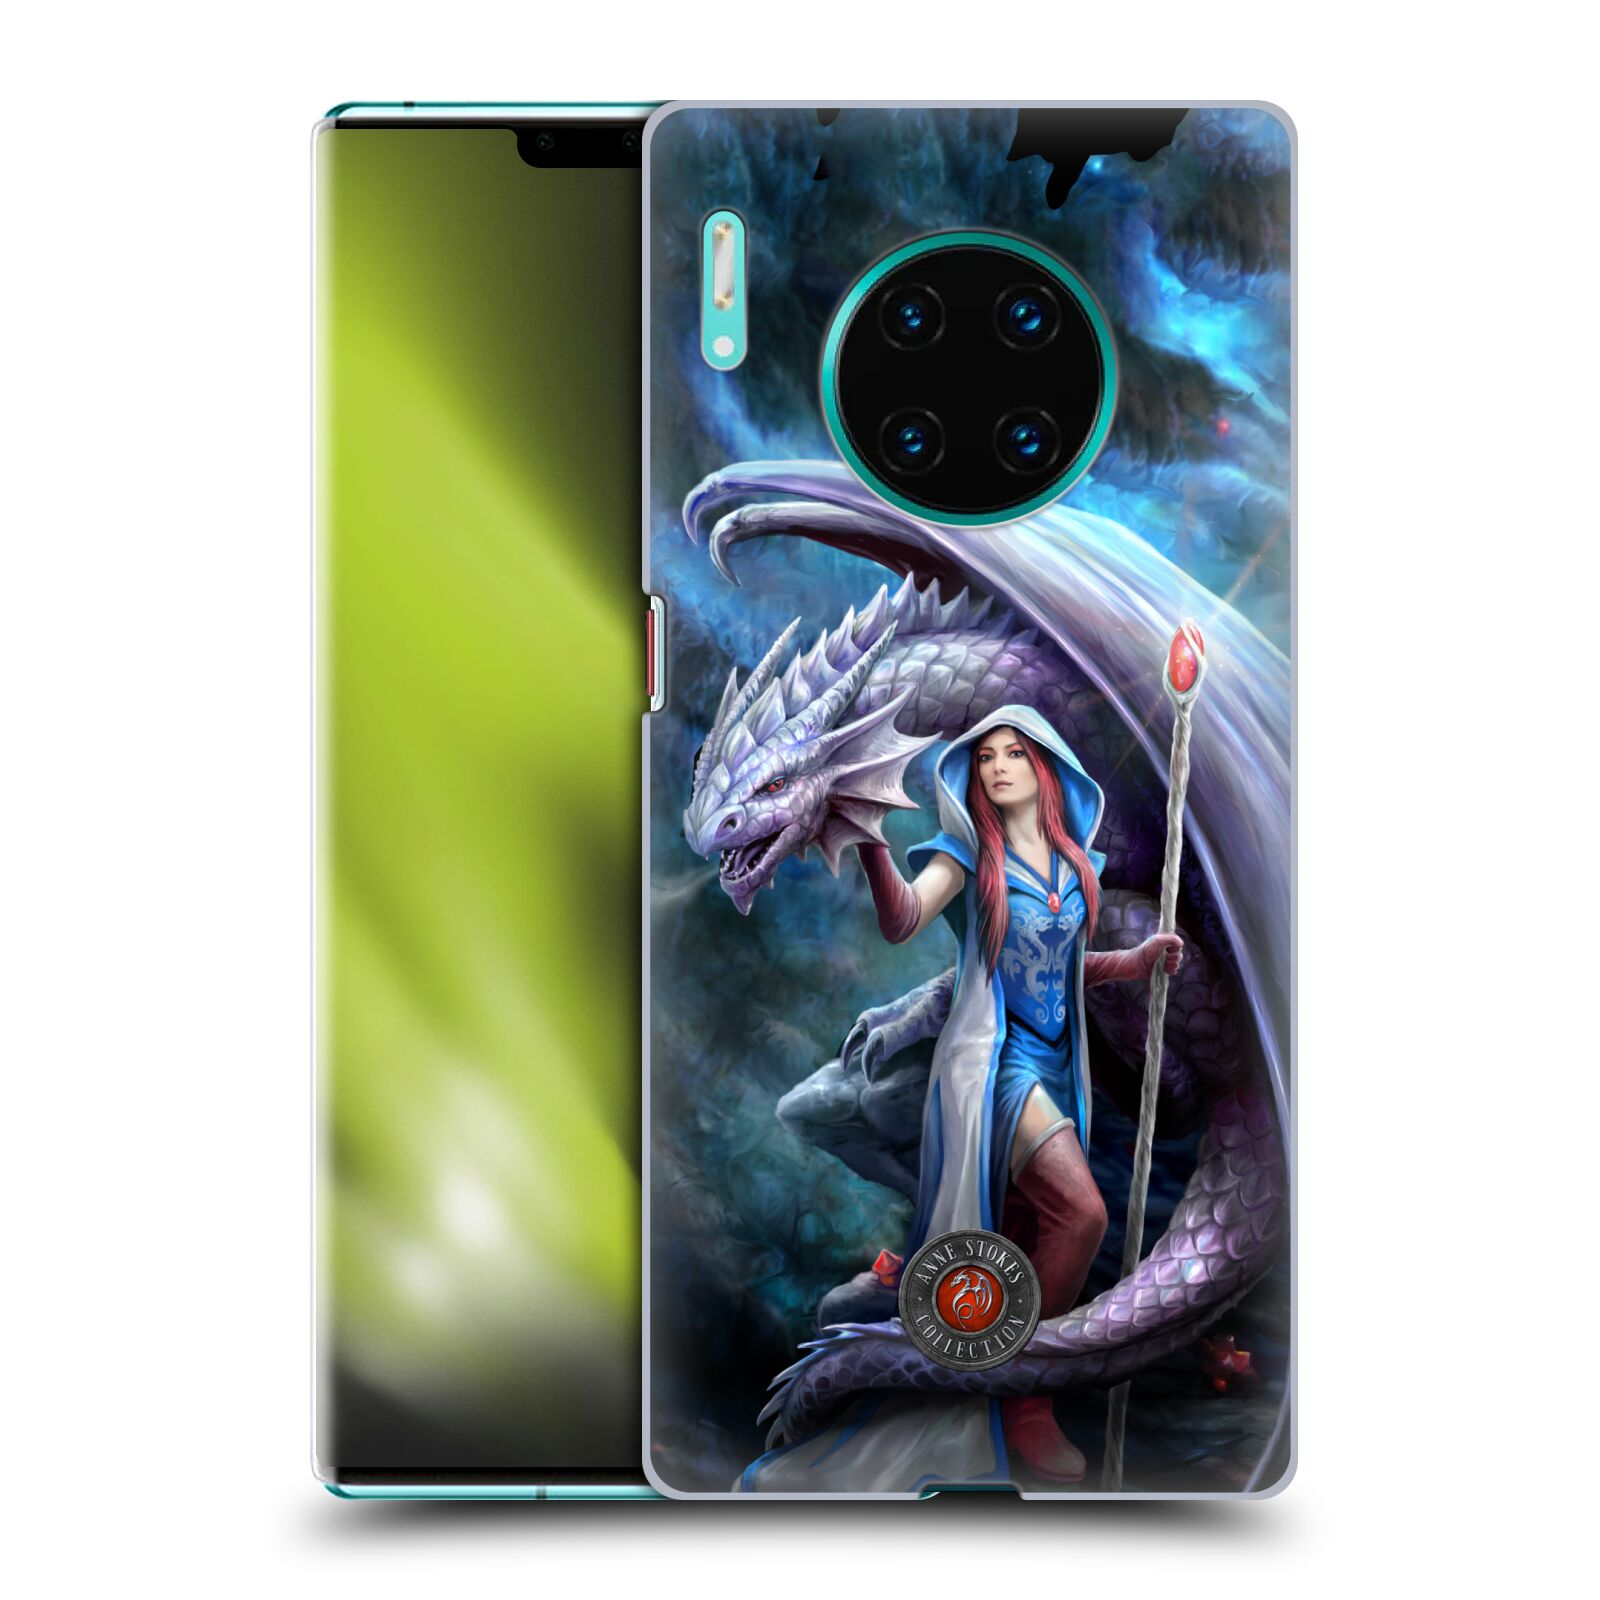 Official Anne Stokes Dragon Friendship 2 Mage Back Case for Huawei Mate 30 Pro / 5G